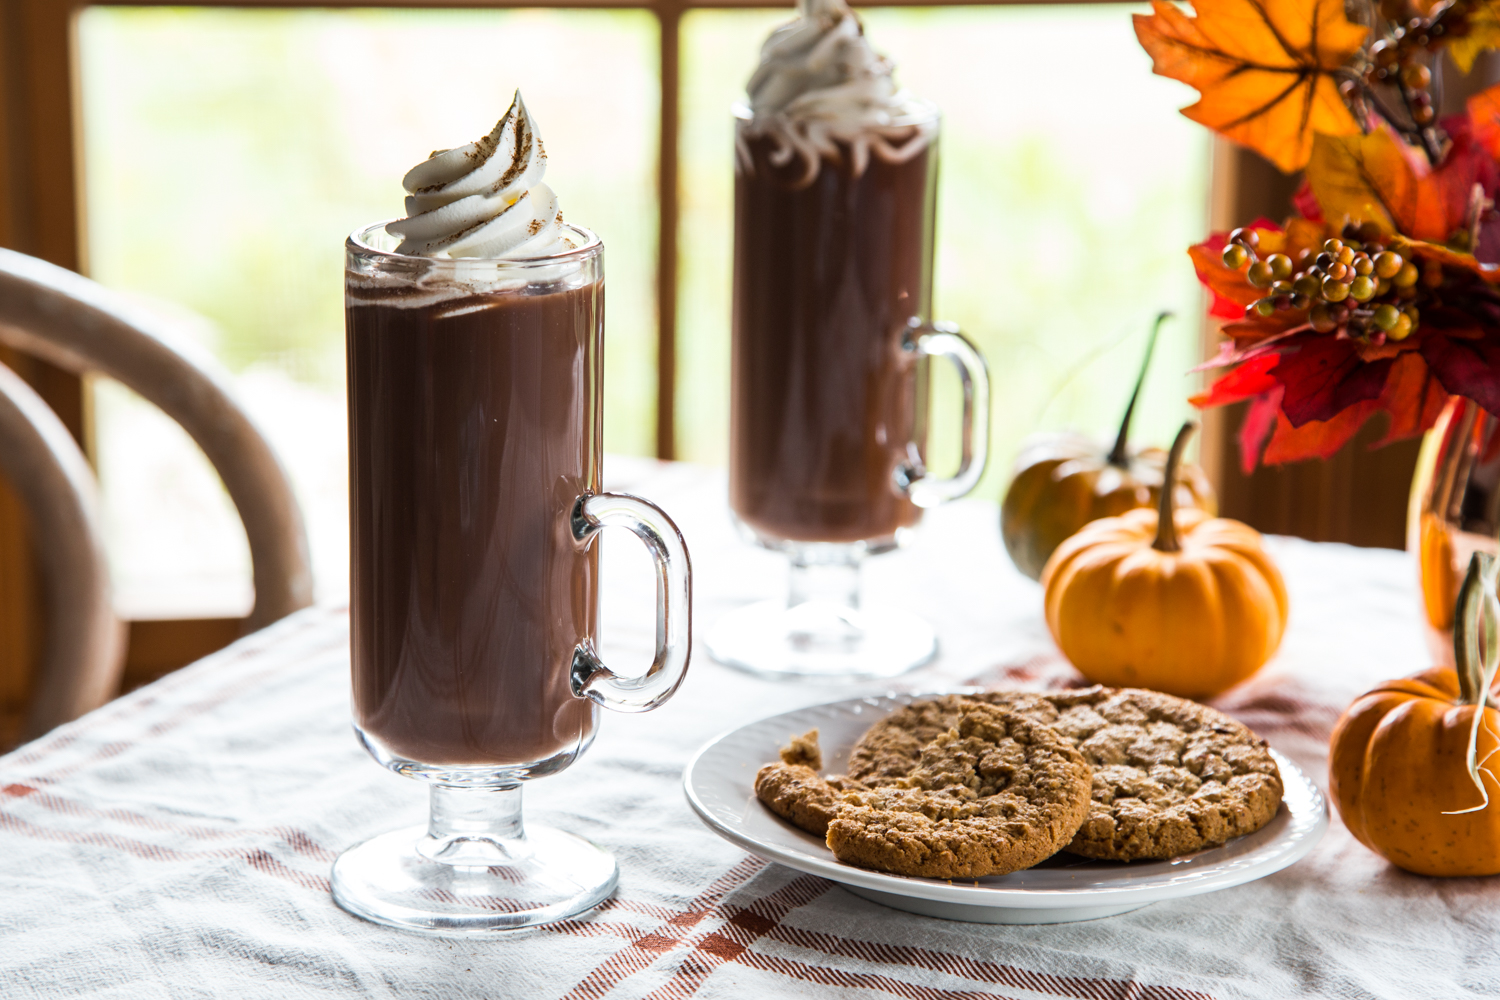 Spiked Pumpkin Spice Hot Chocolate - Jelly Toast